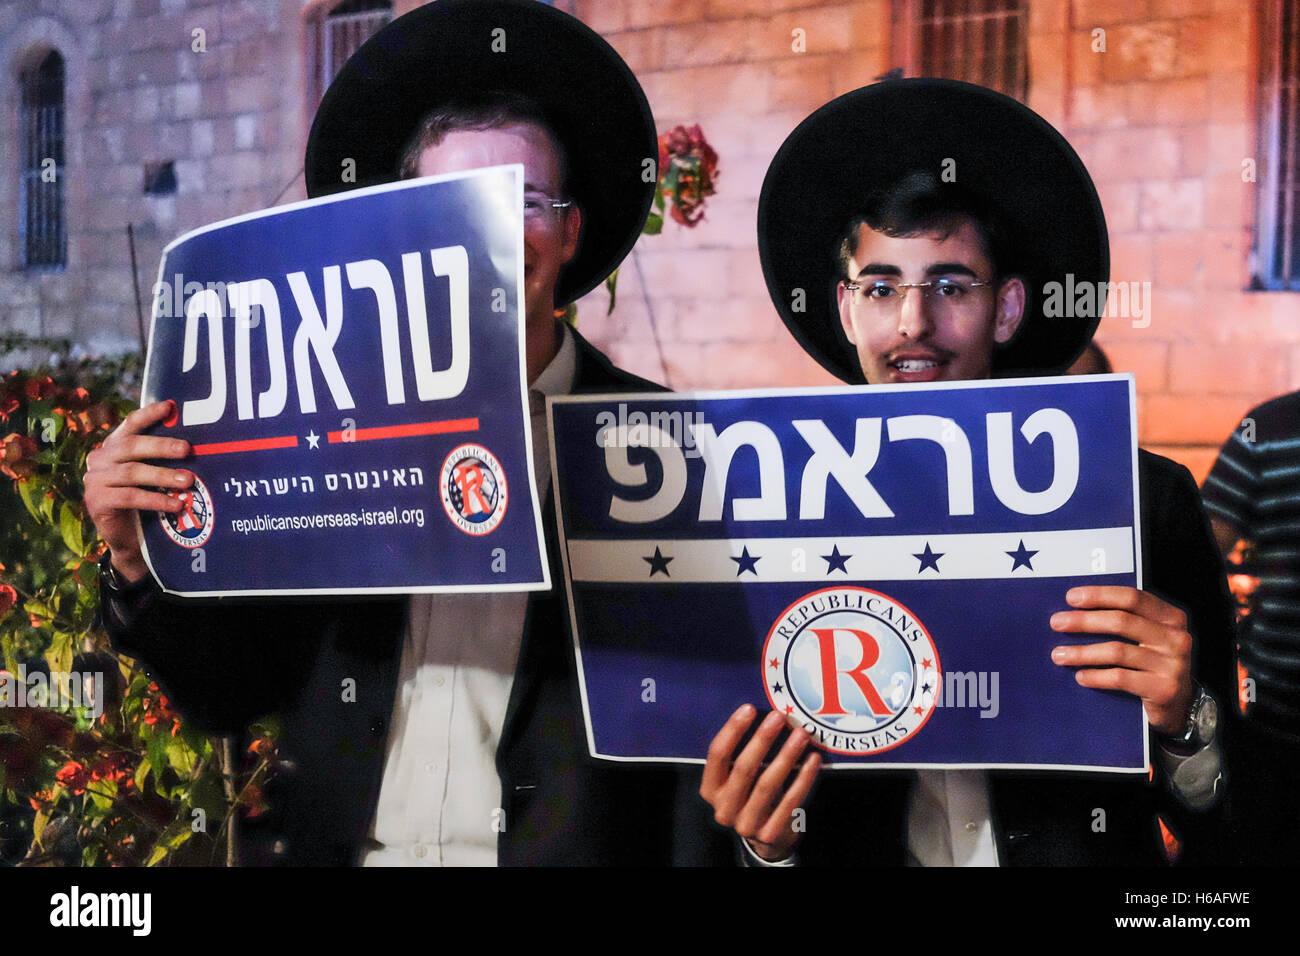 Jerusalem, Israel. 26th October, 2016. Two Orthodox Jewish men hold up pro-Trump signs in Hebrew as Republicans - Stock Image